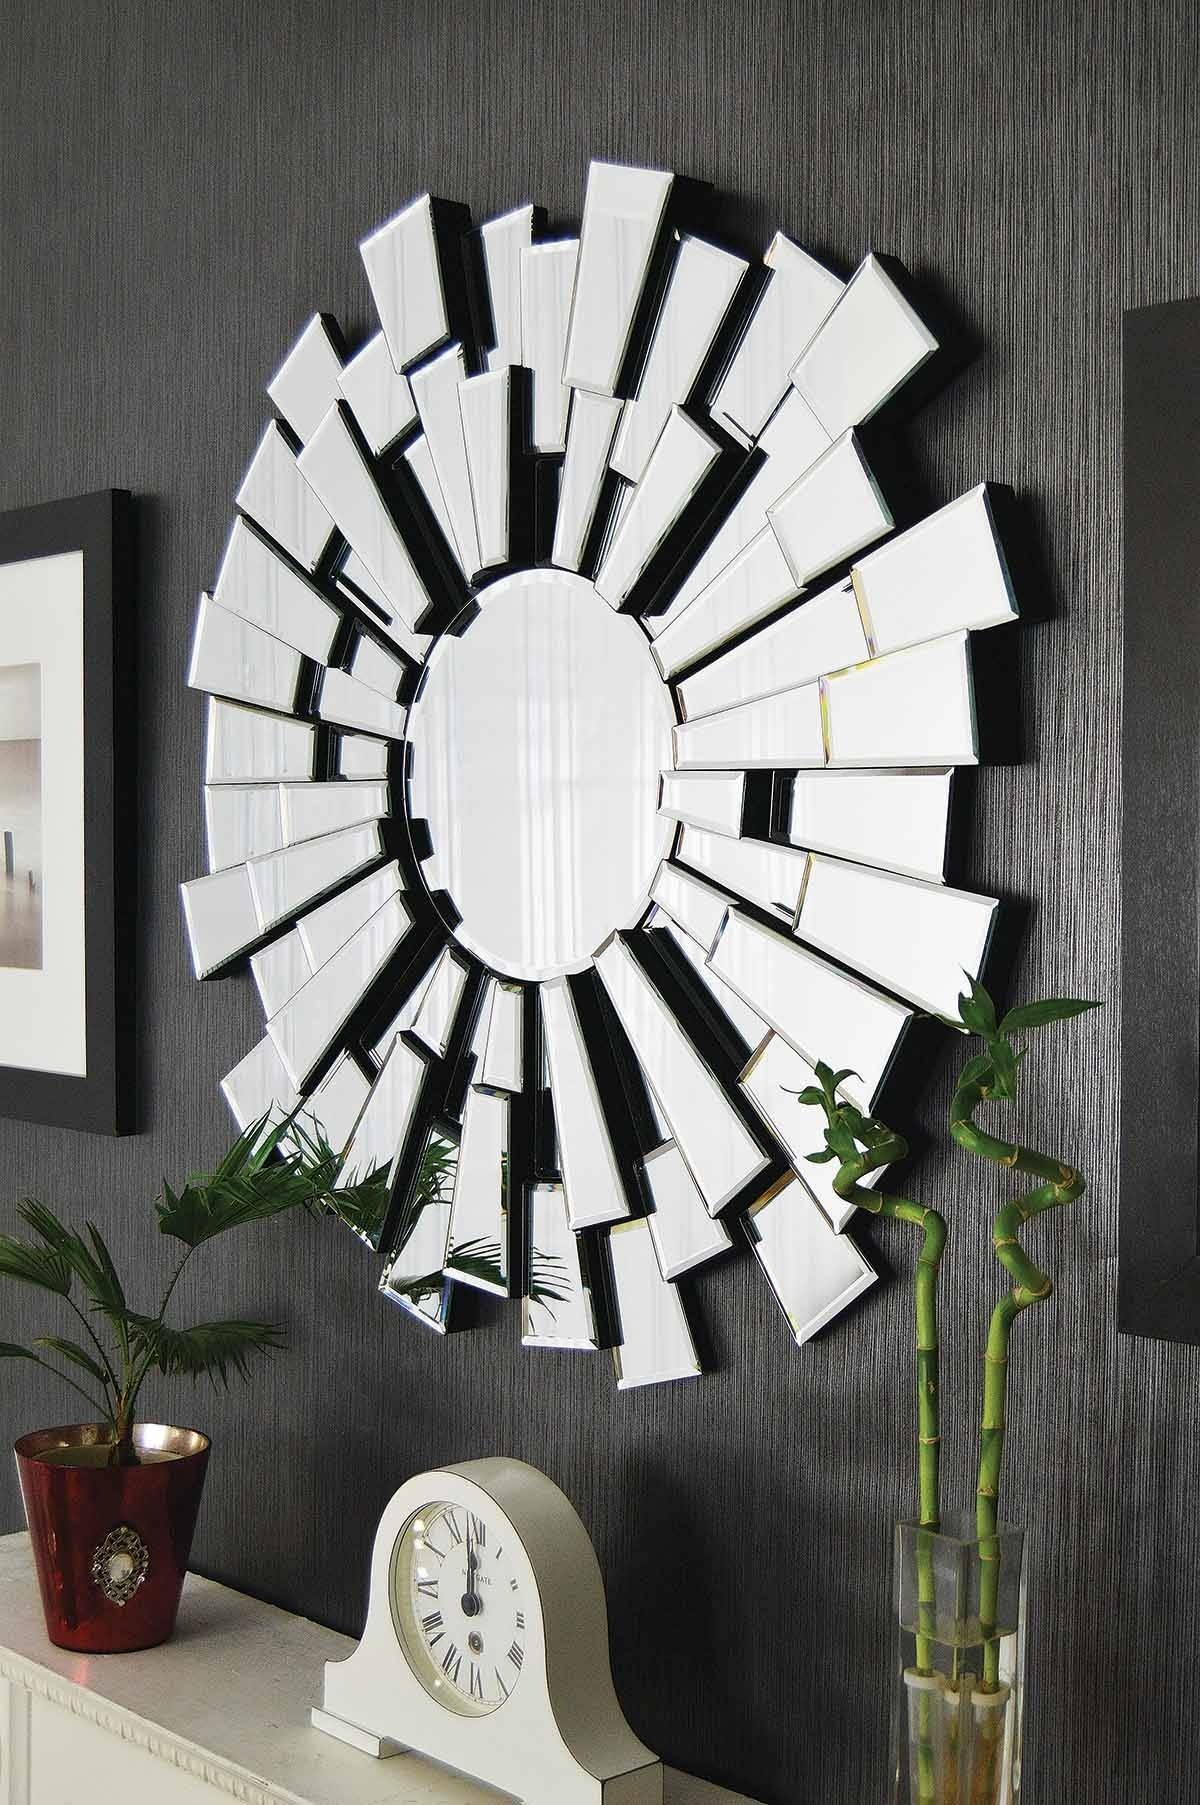 Large Circular Wall Mirrors 109 Stunning Decor With Dazzling Round in Large Circular Mirrors (Image 12 of 25)